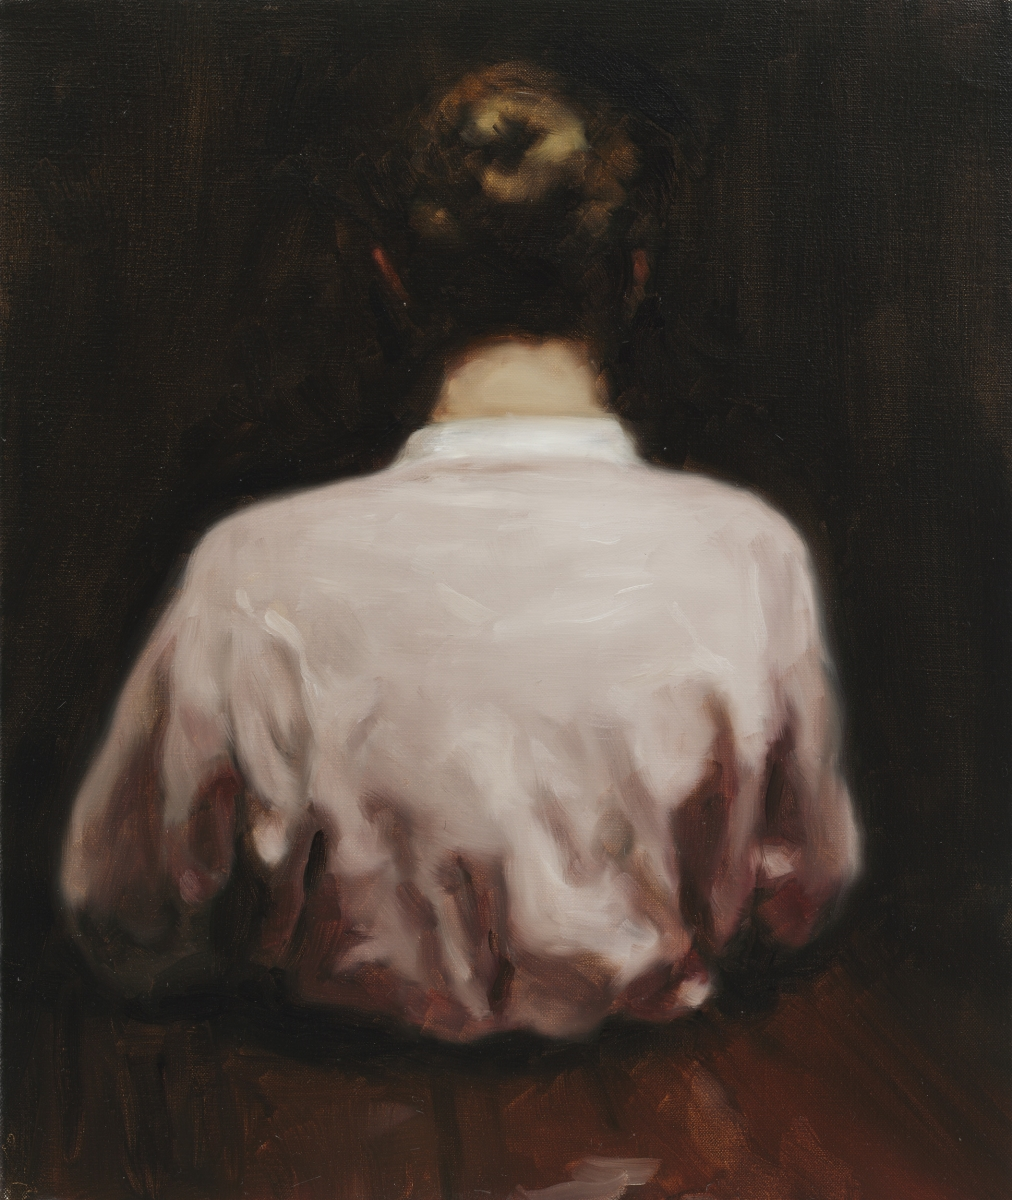 Michaël Borremans, The GIant, 2007.